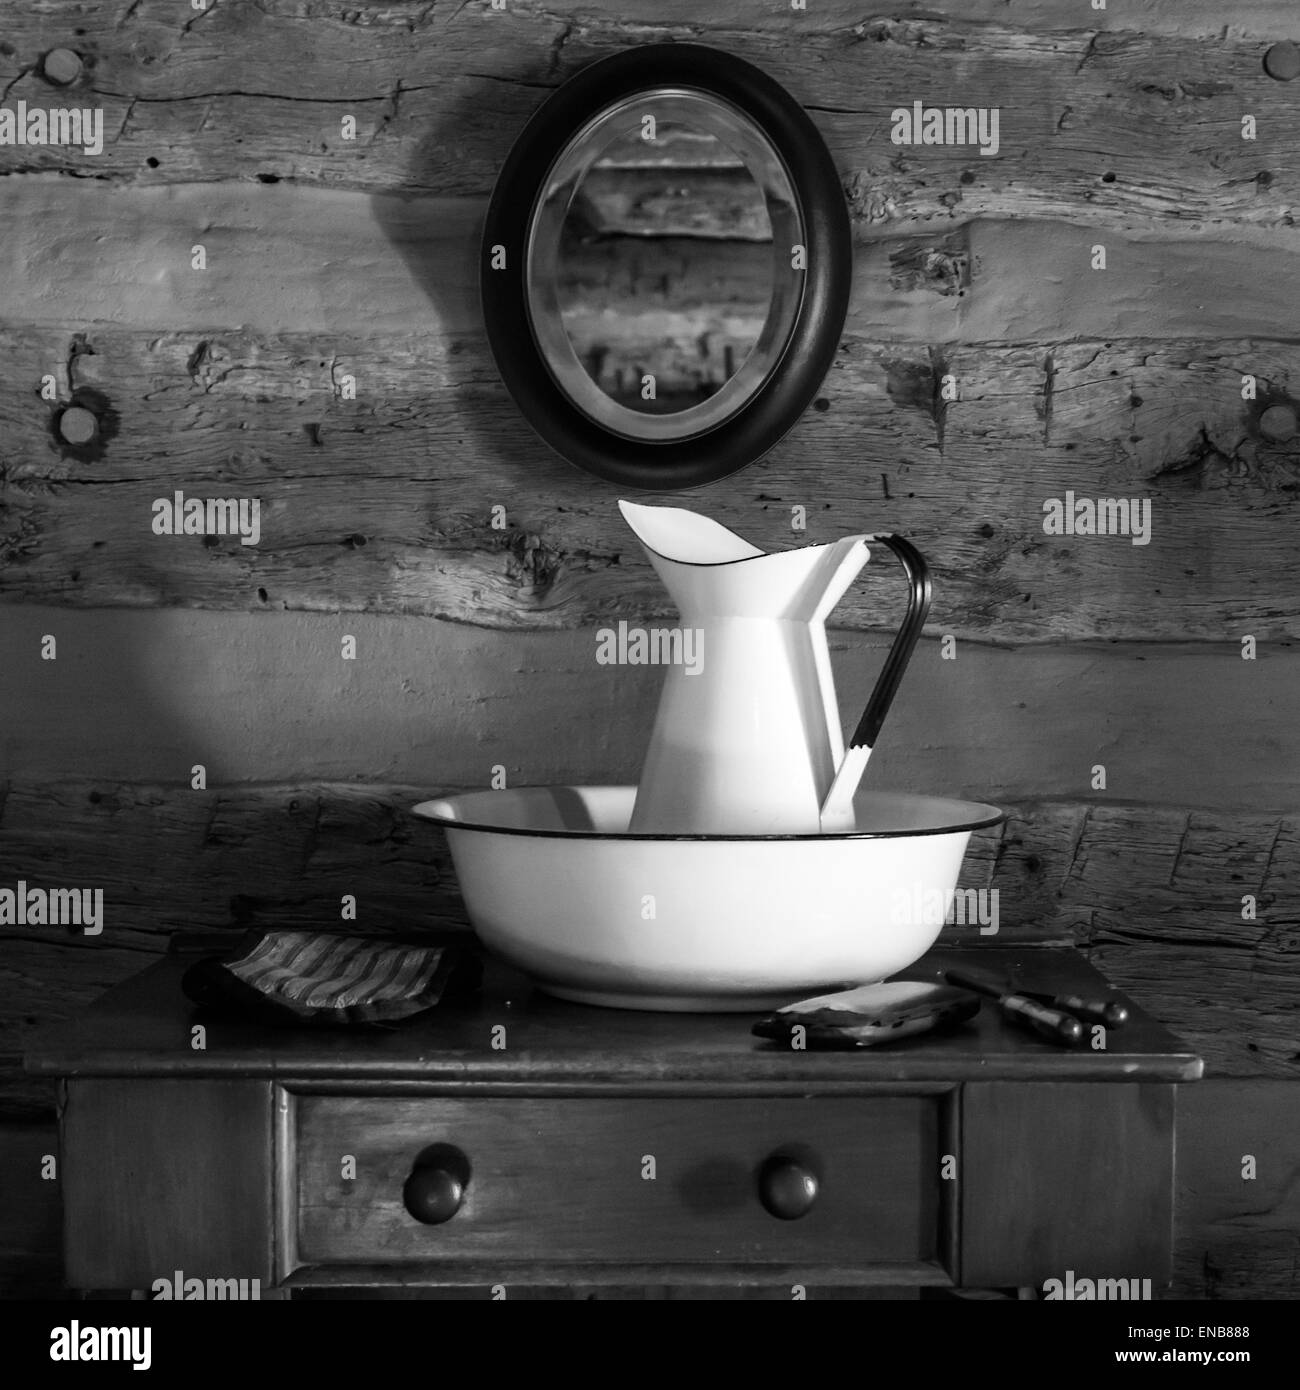 Antique wash bowl and pitcher displayed on dresser in log cabin at Log Cabin Village, Fort Worth, Texas - Stock Image